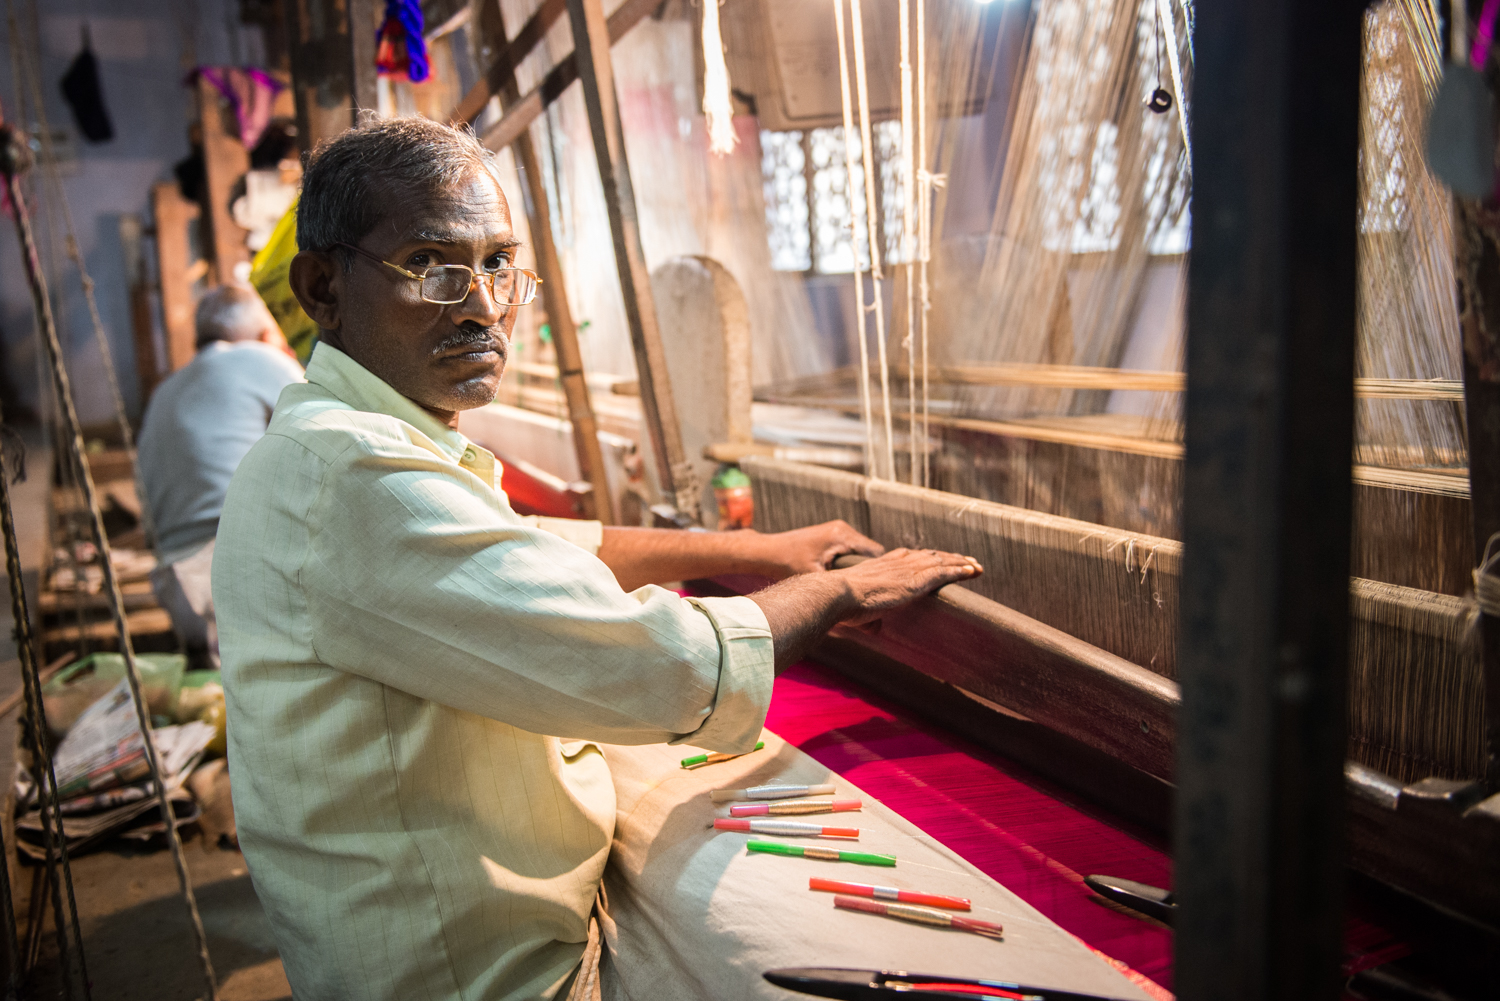 This silk weaver works 8 hours a day using the handloom and receives 400 rupees per day (8$ canadian) - Uttar Pradesh, India.